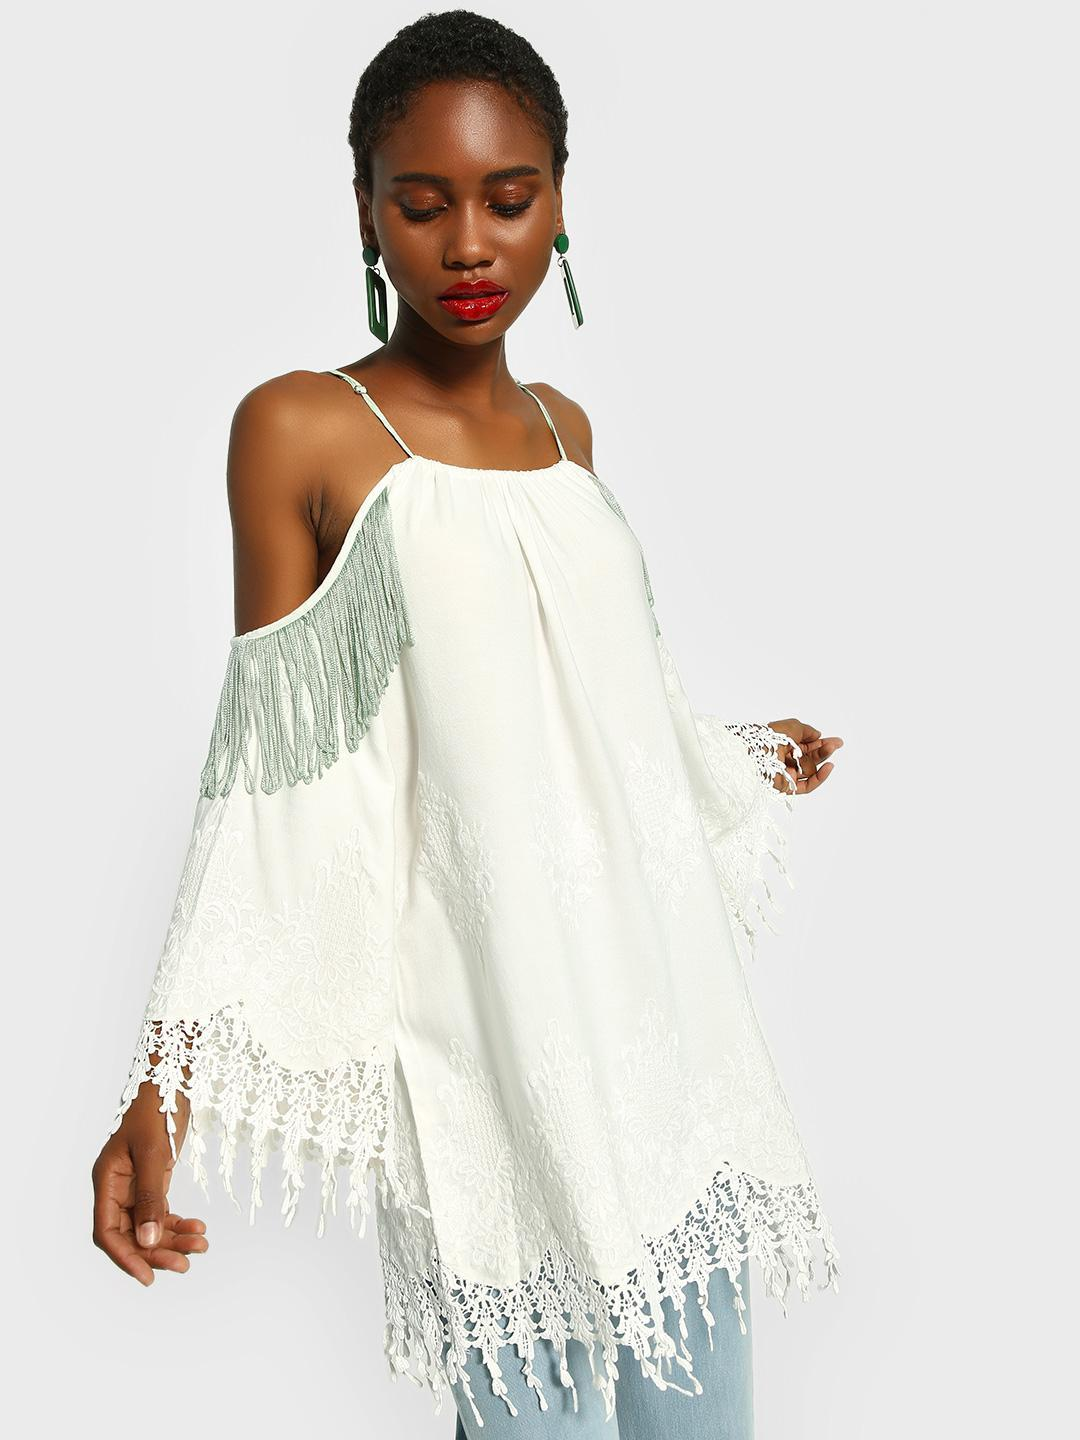 The Paperdoll Company White Cold Shoulder Lace Hem Blouse 1